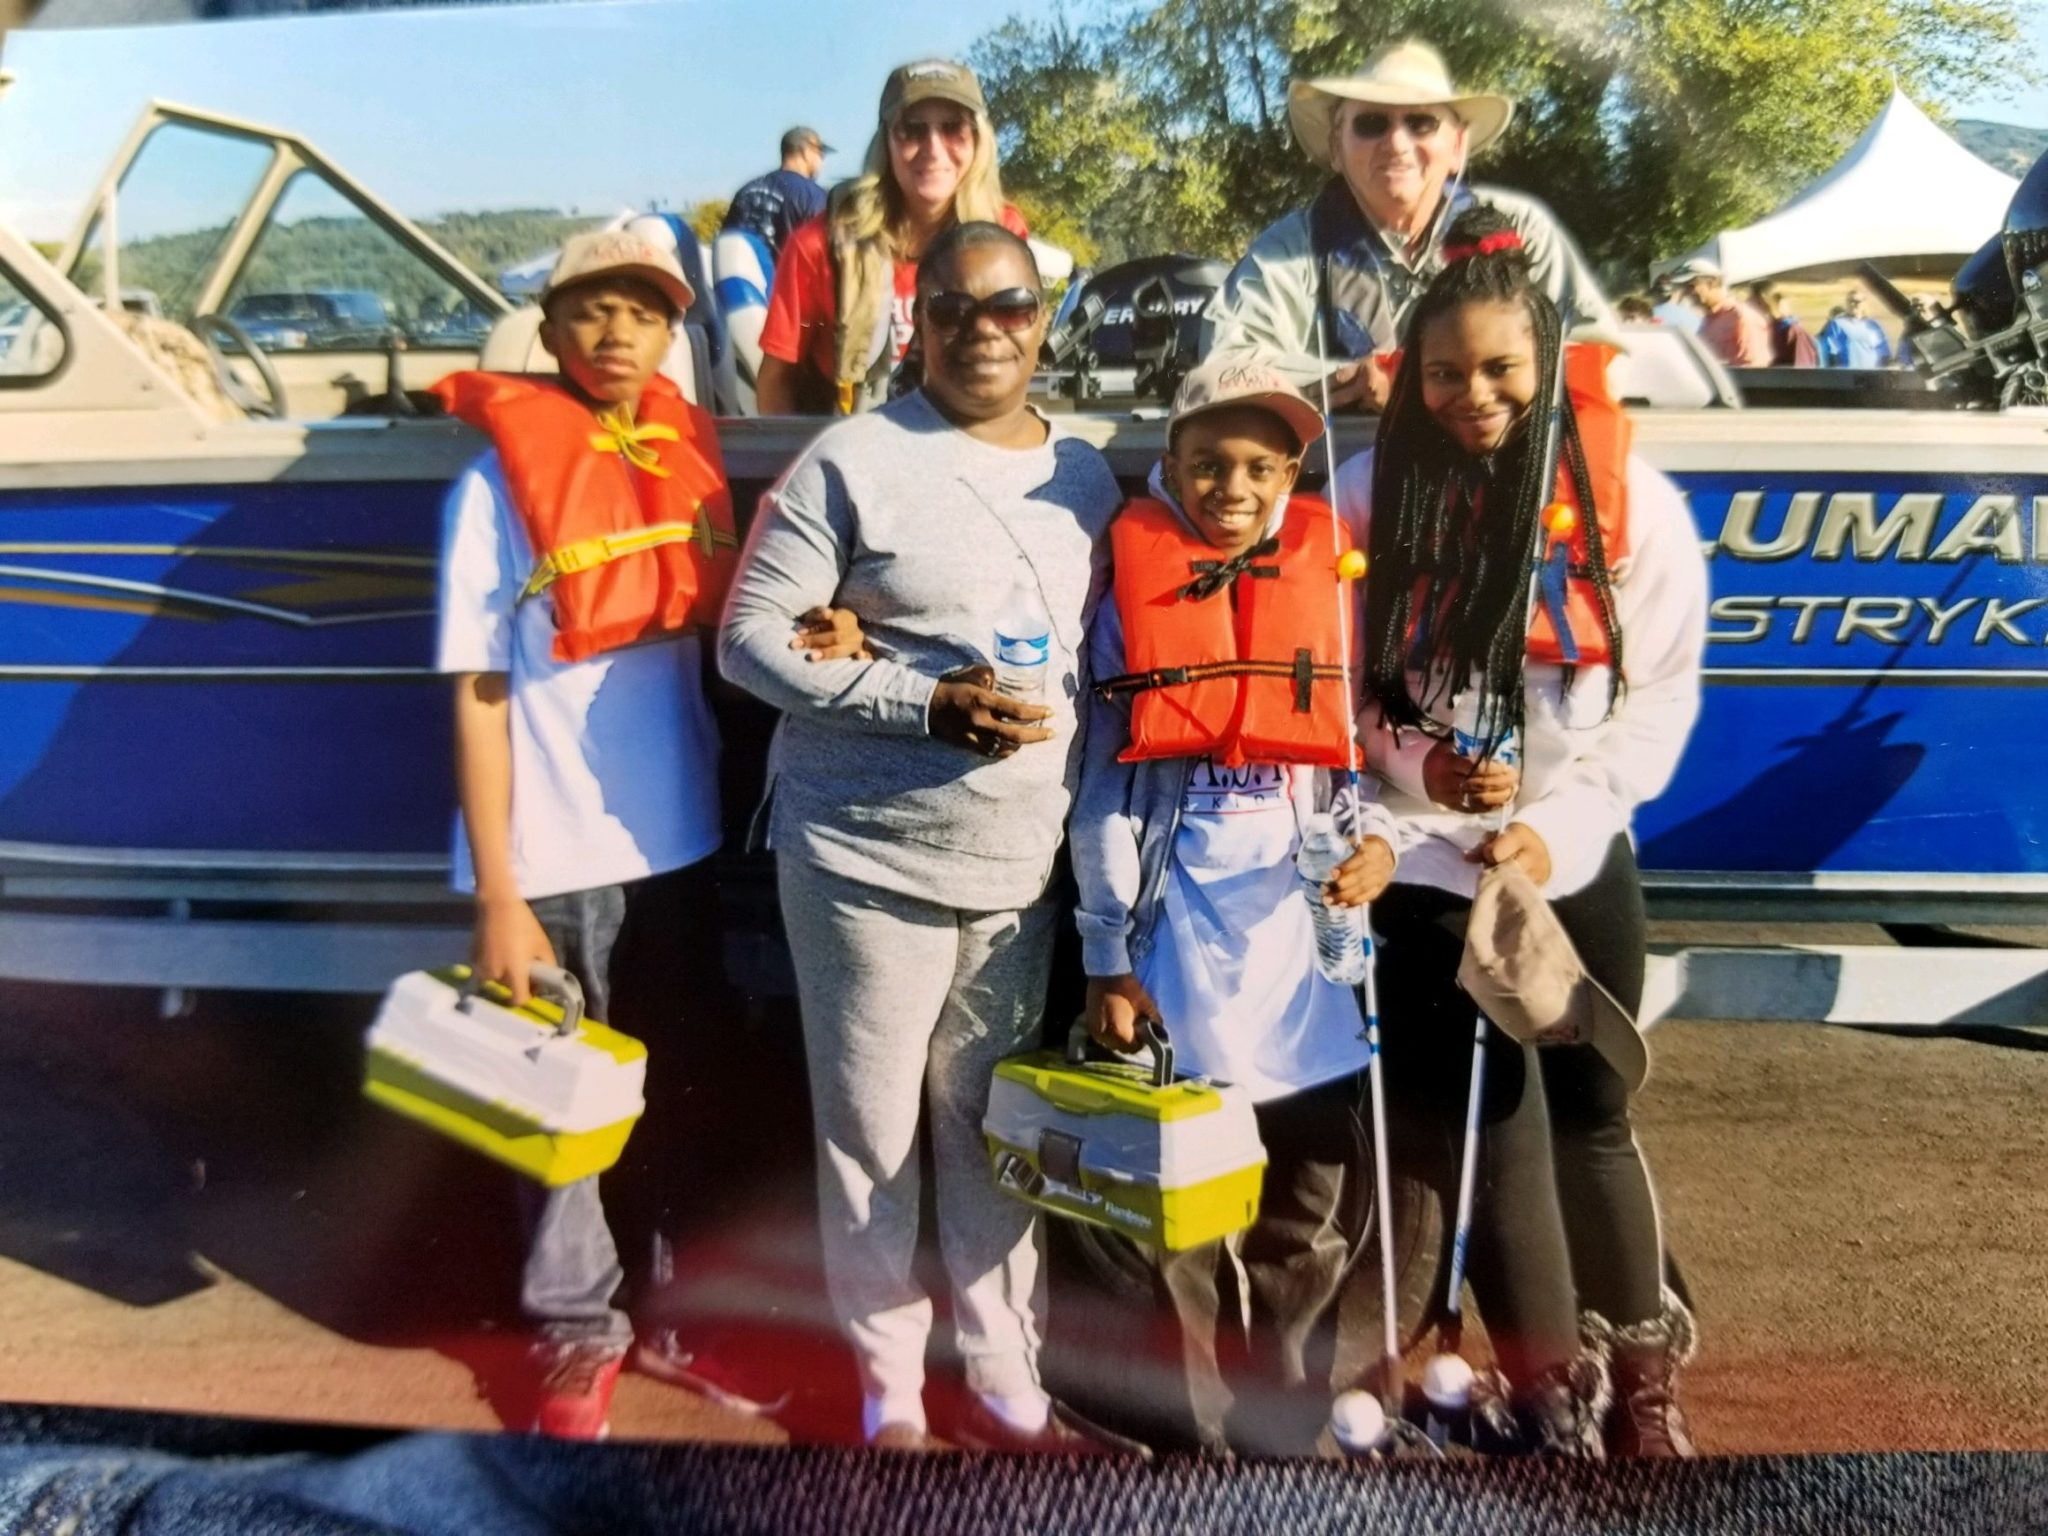 How a C.A.S.T. for Kids Fishing Event Can Make You Feel Like Family